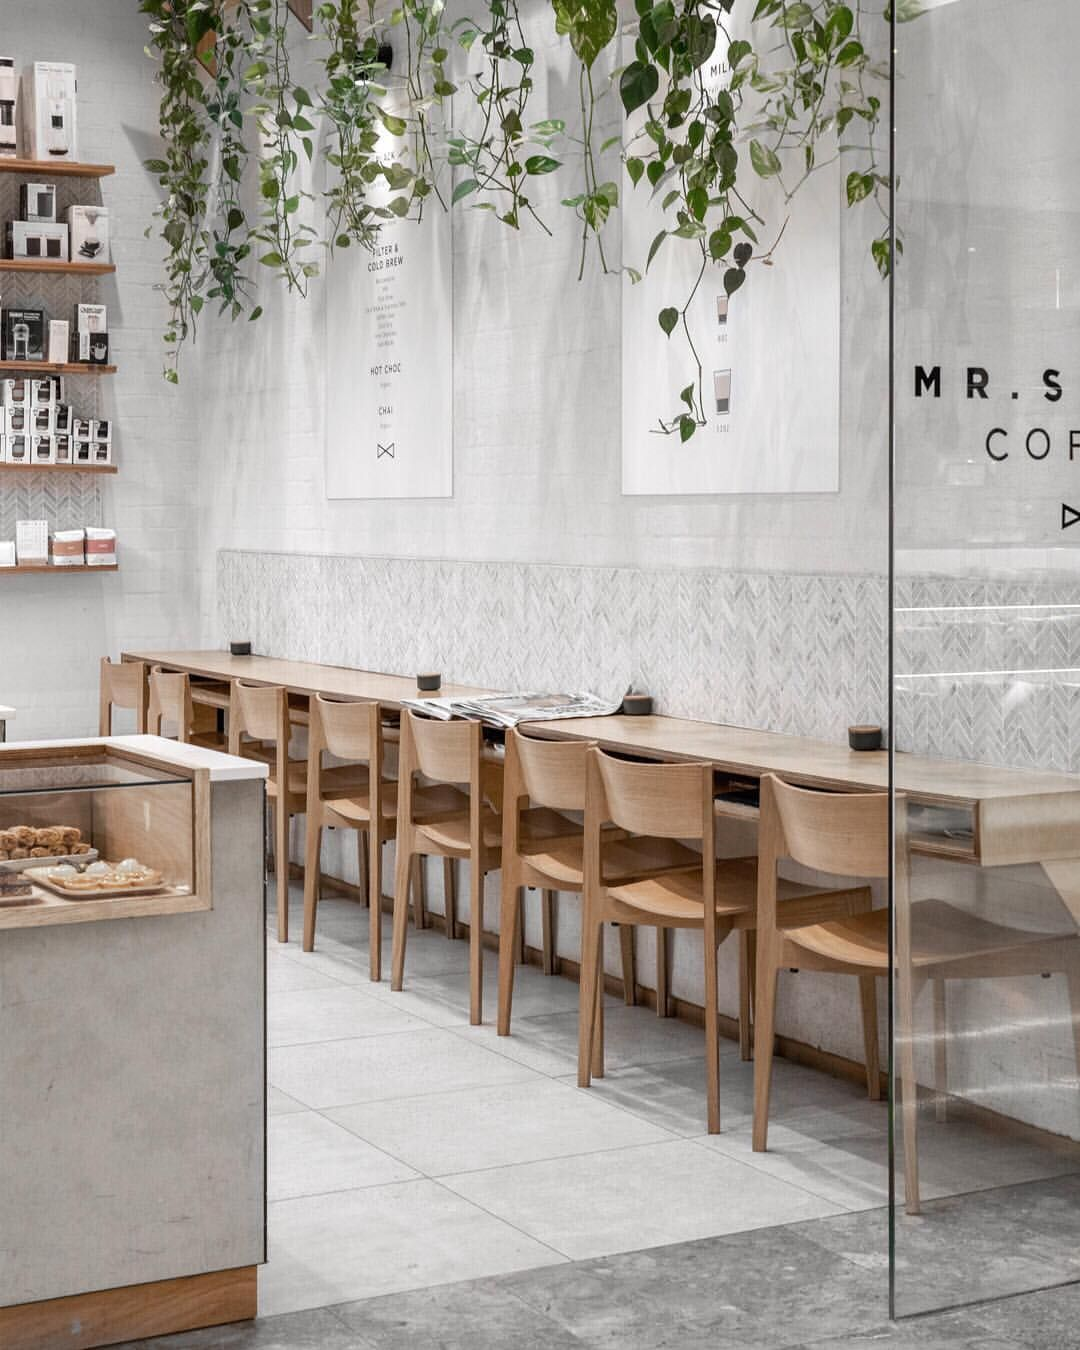 cafe, grey floor tiles, grey wall, wooden long table, wooden chairs, wooden floating shelves